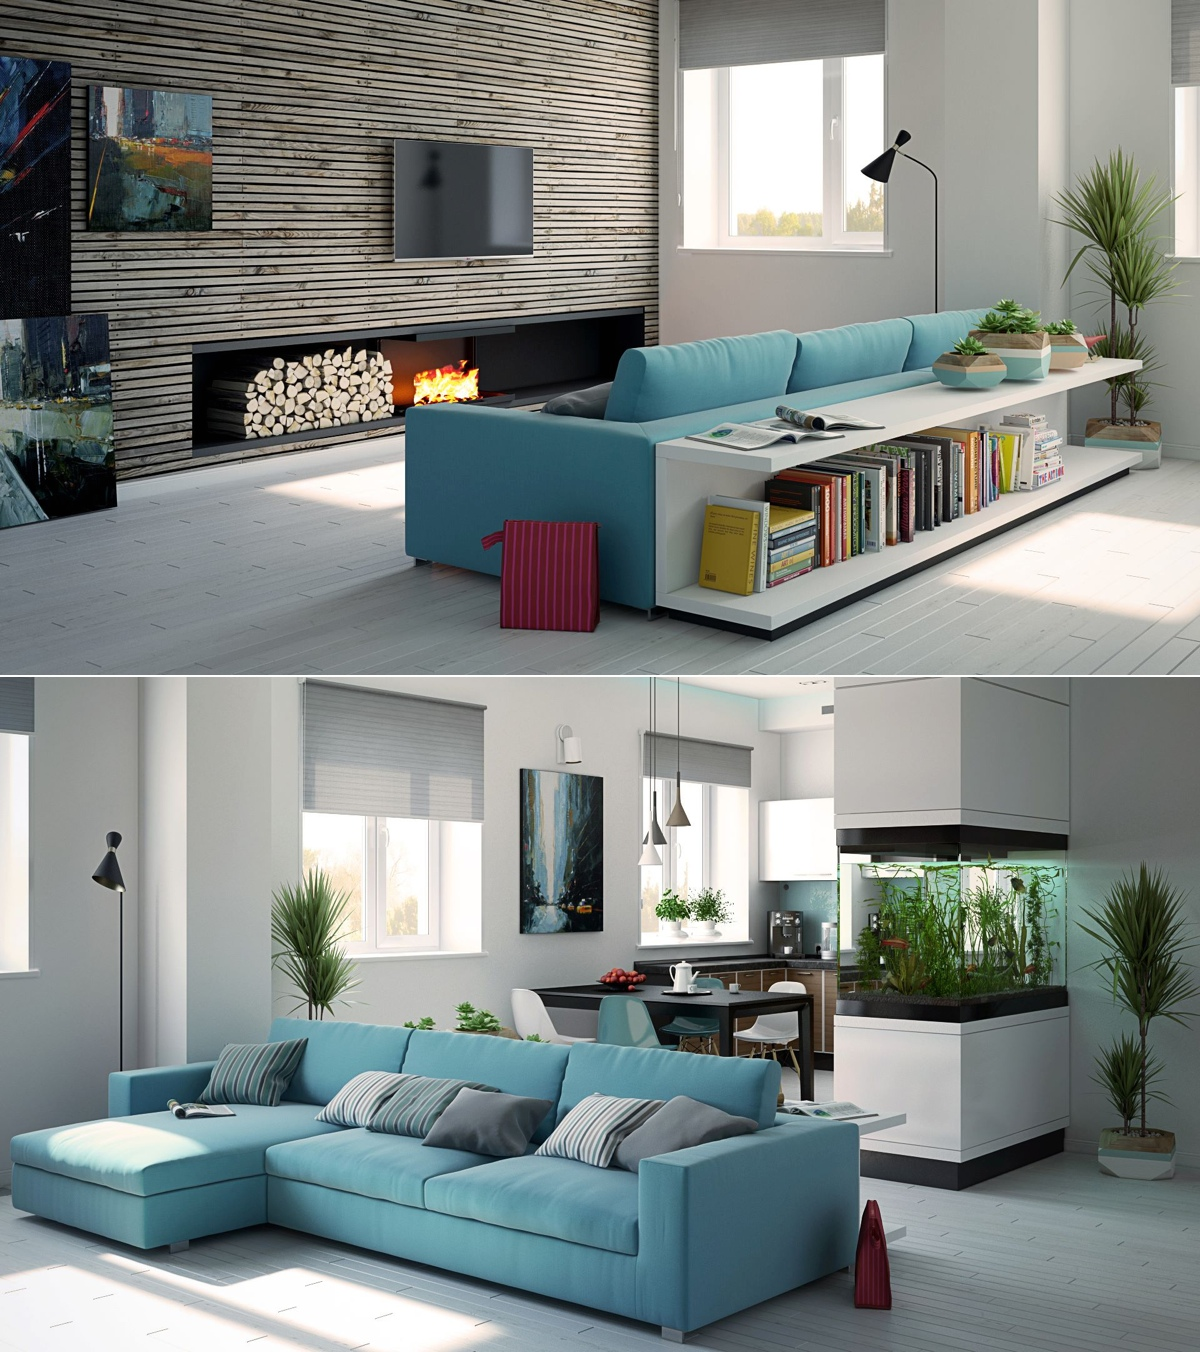 Awesomely stylish urban living rooms for The living room 20 10 17